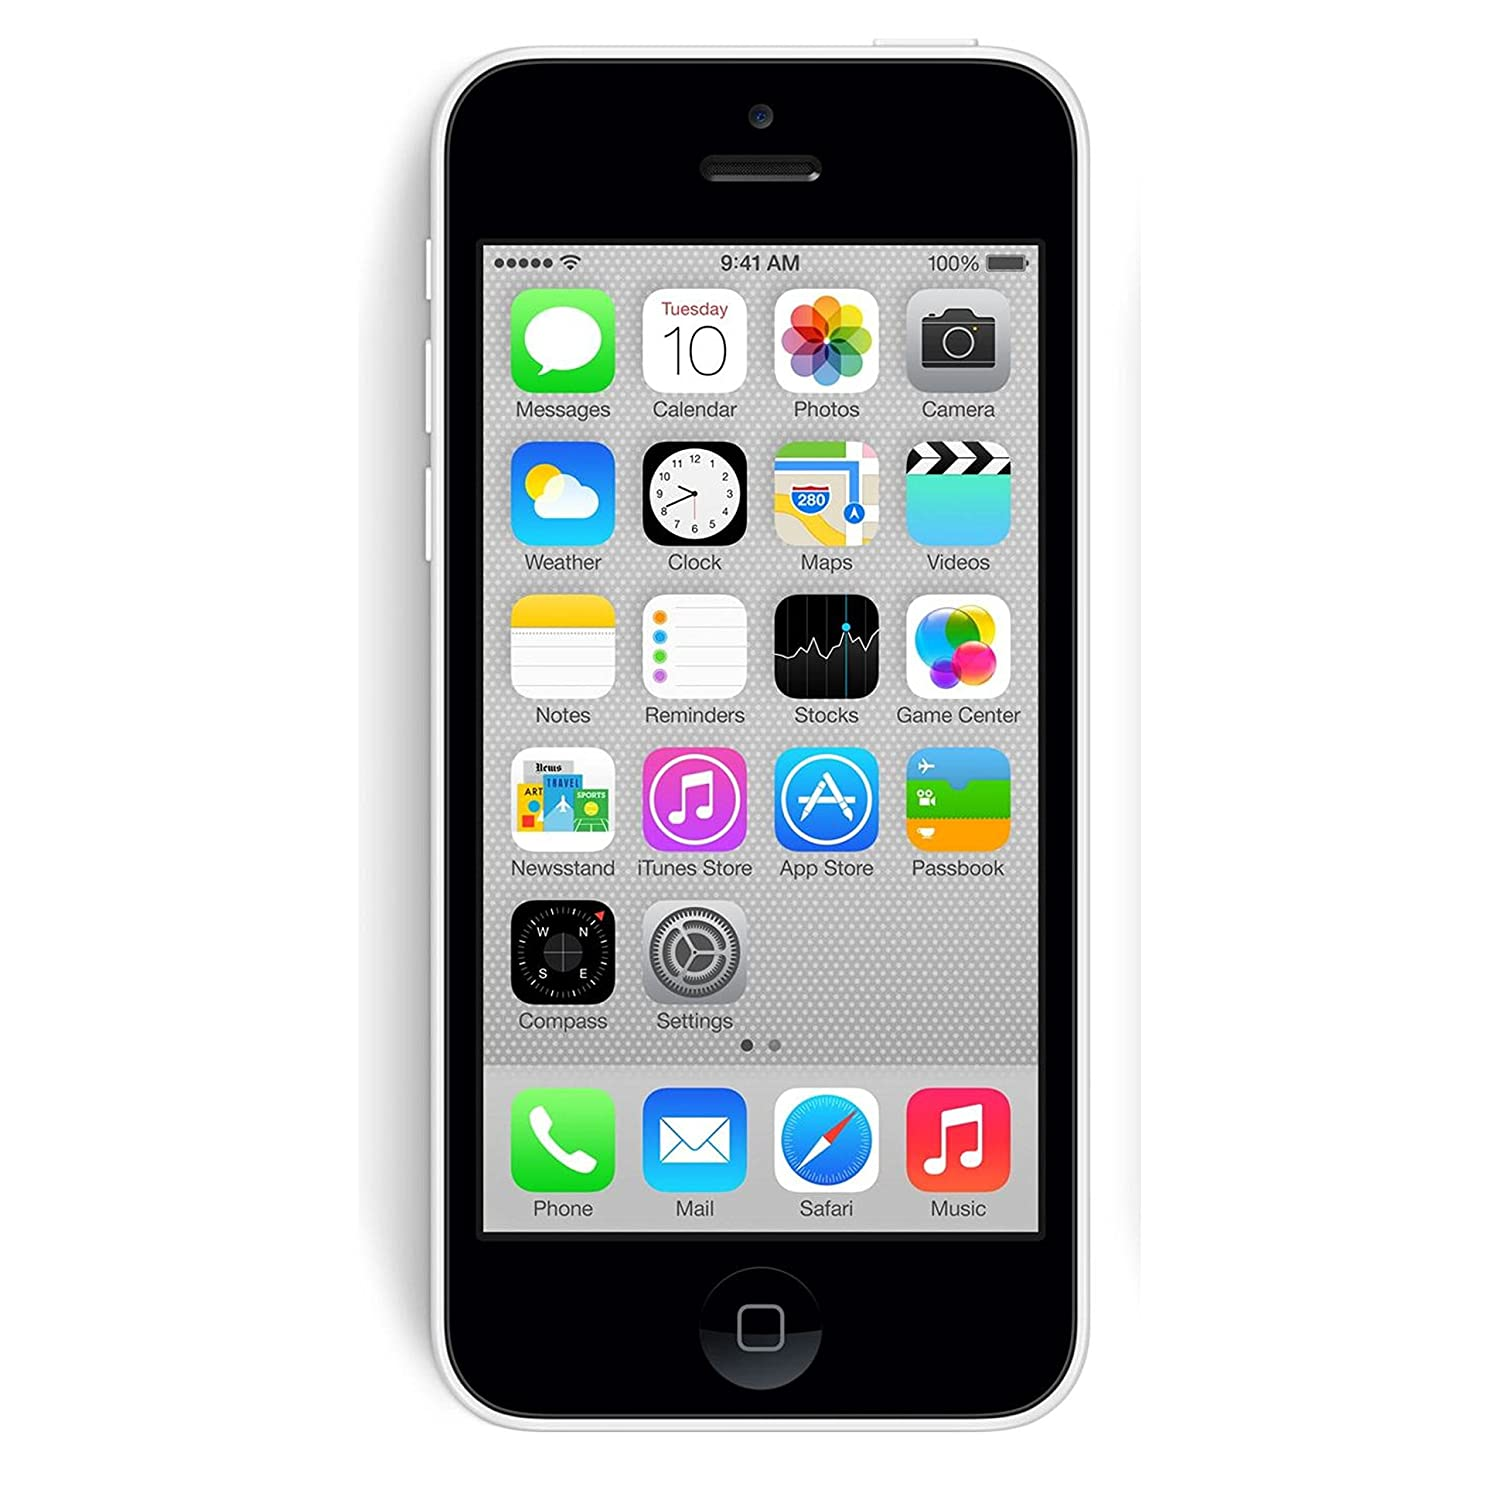 9082f3600 Apple iPhone 5C White 16GB Unlocked GSM Smartphone (Refurbished)